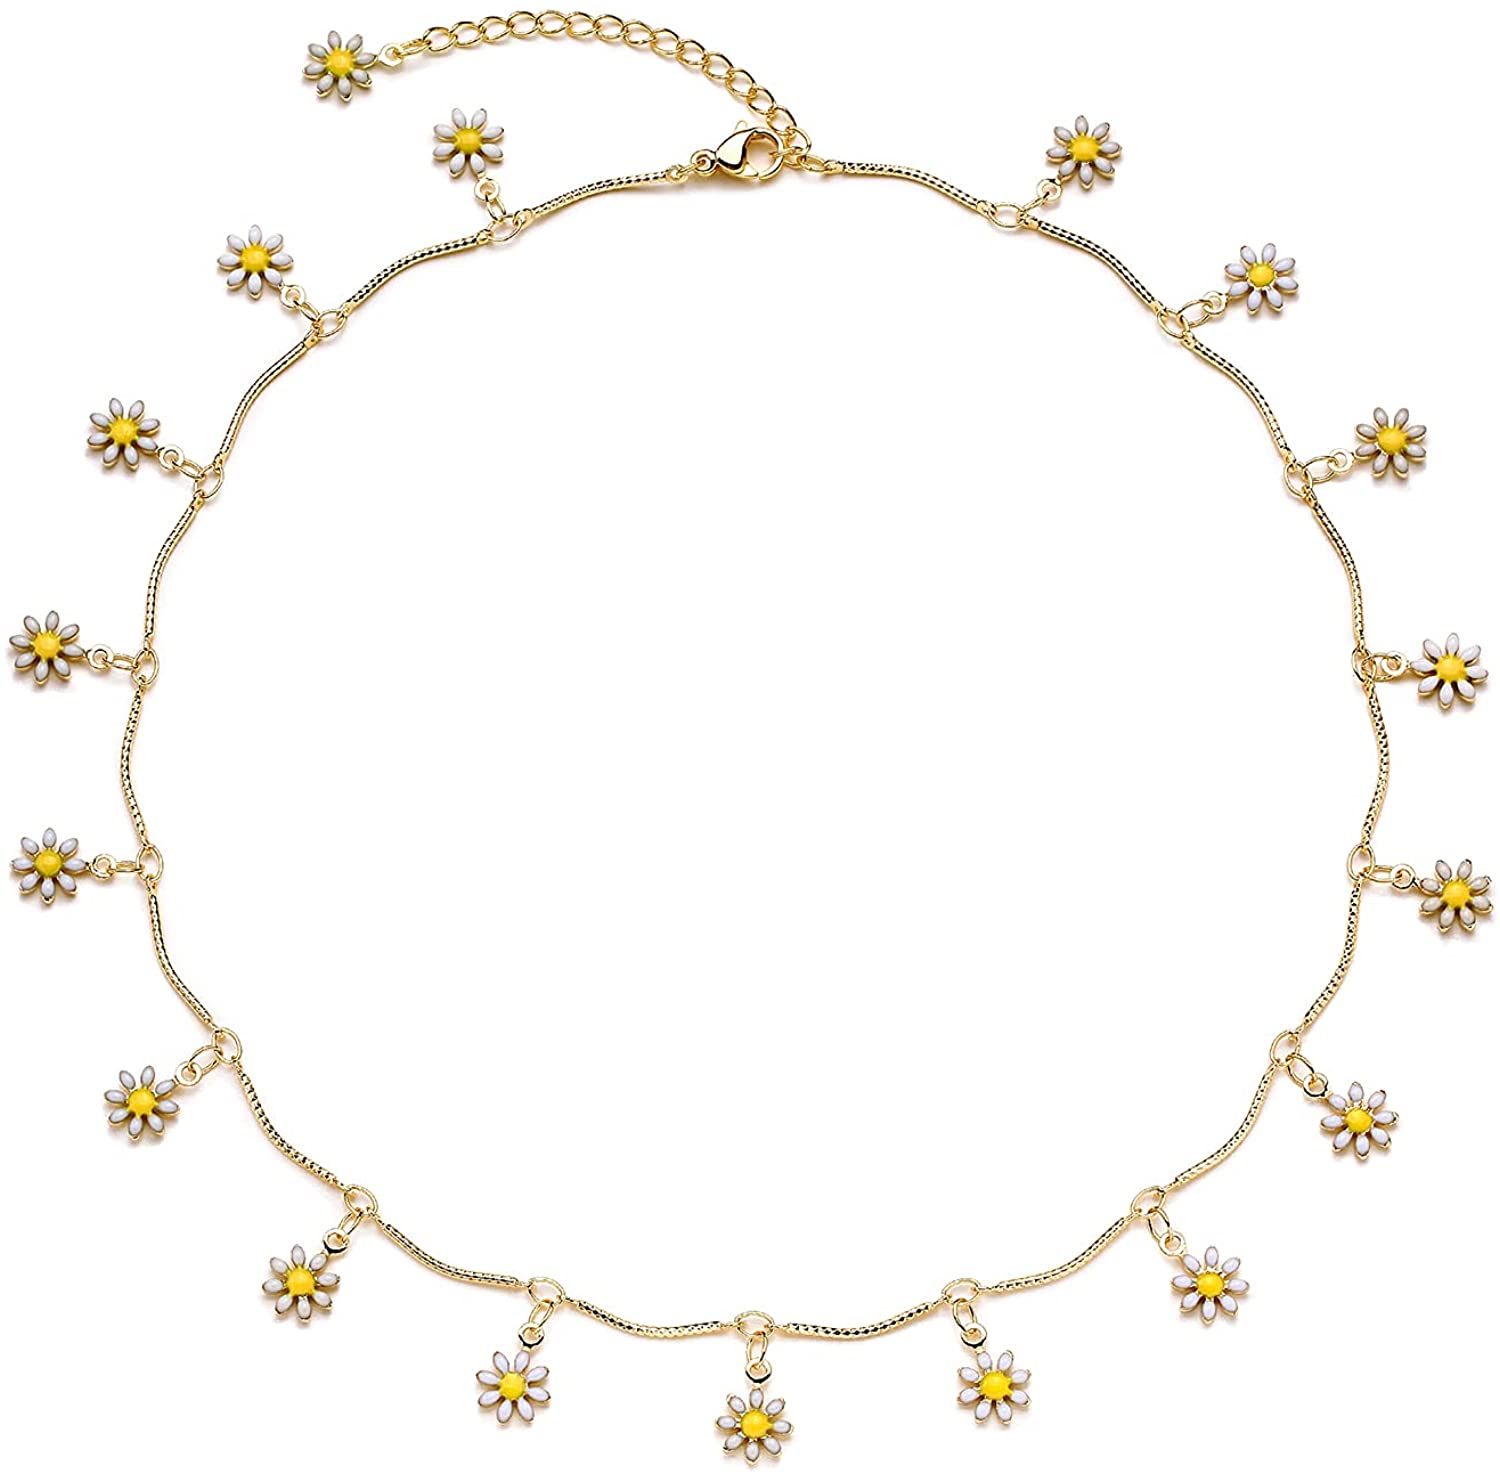 Valloey Rover Choker Necklace for Women 14k Gold Plated Dainty Rope Short Chain Necklace